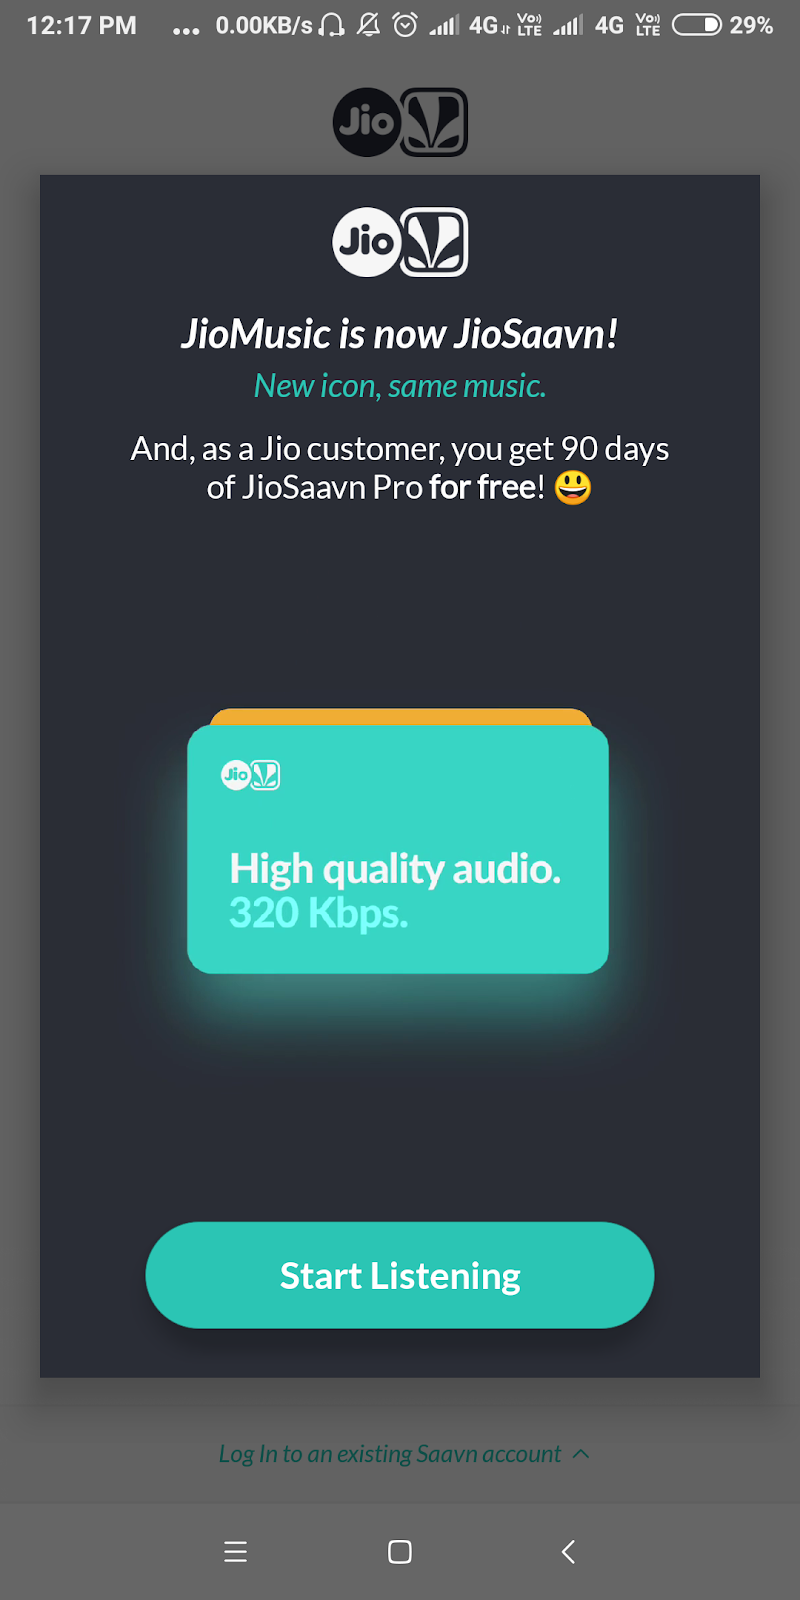 JioSaavn aka Jio music with 90 days premium subscription for